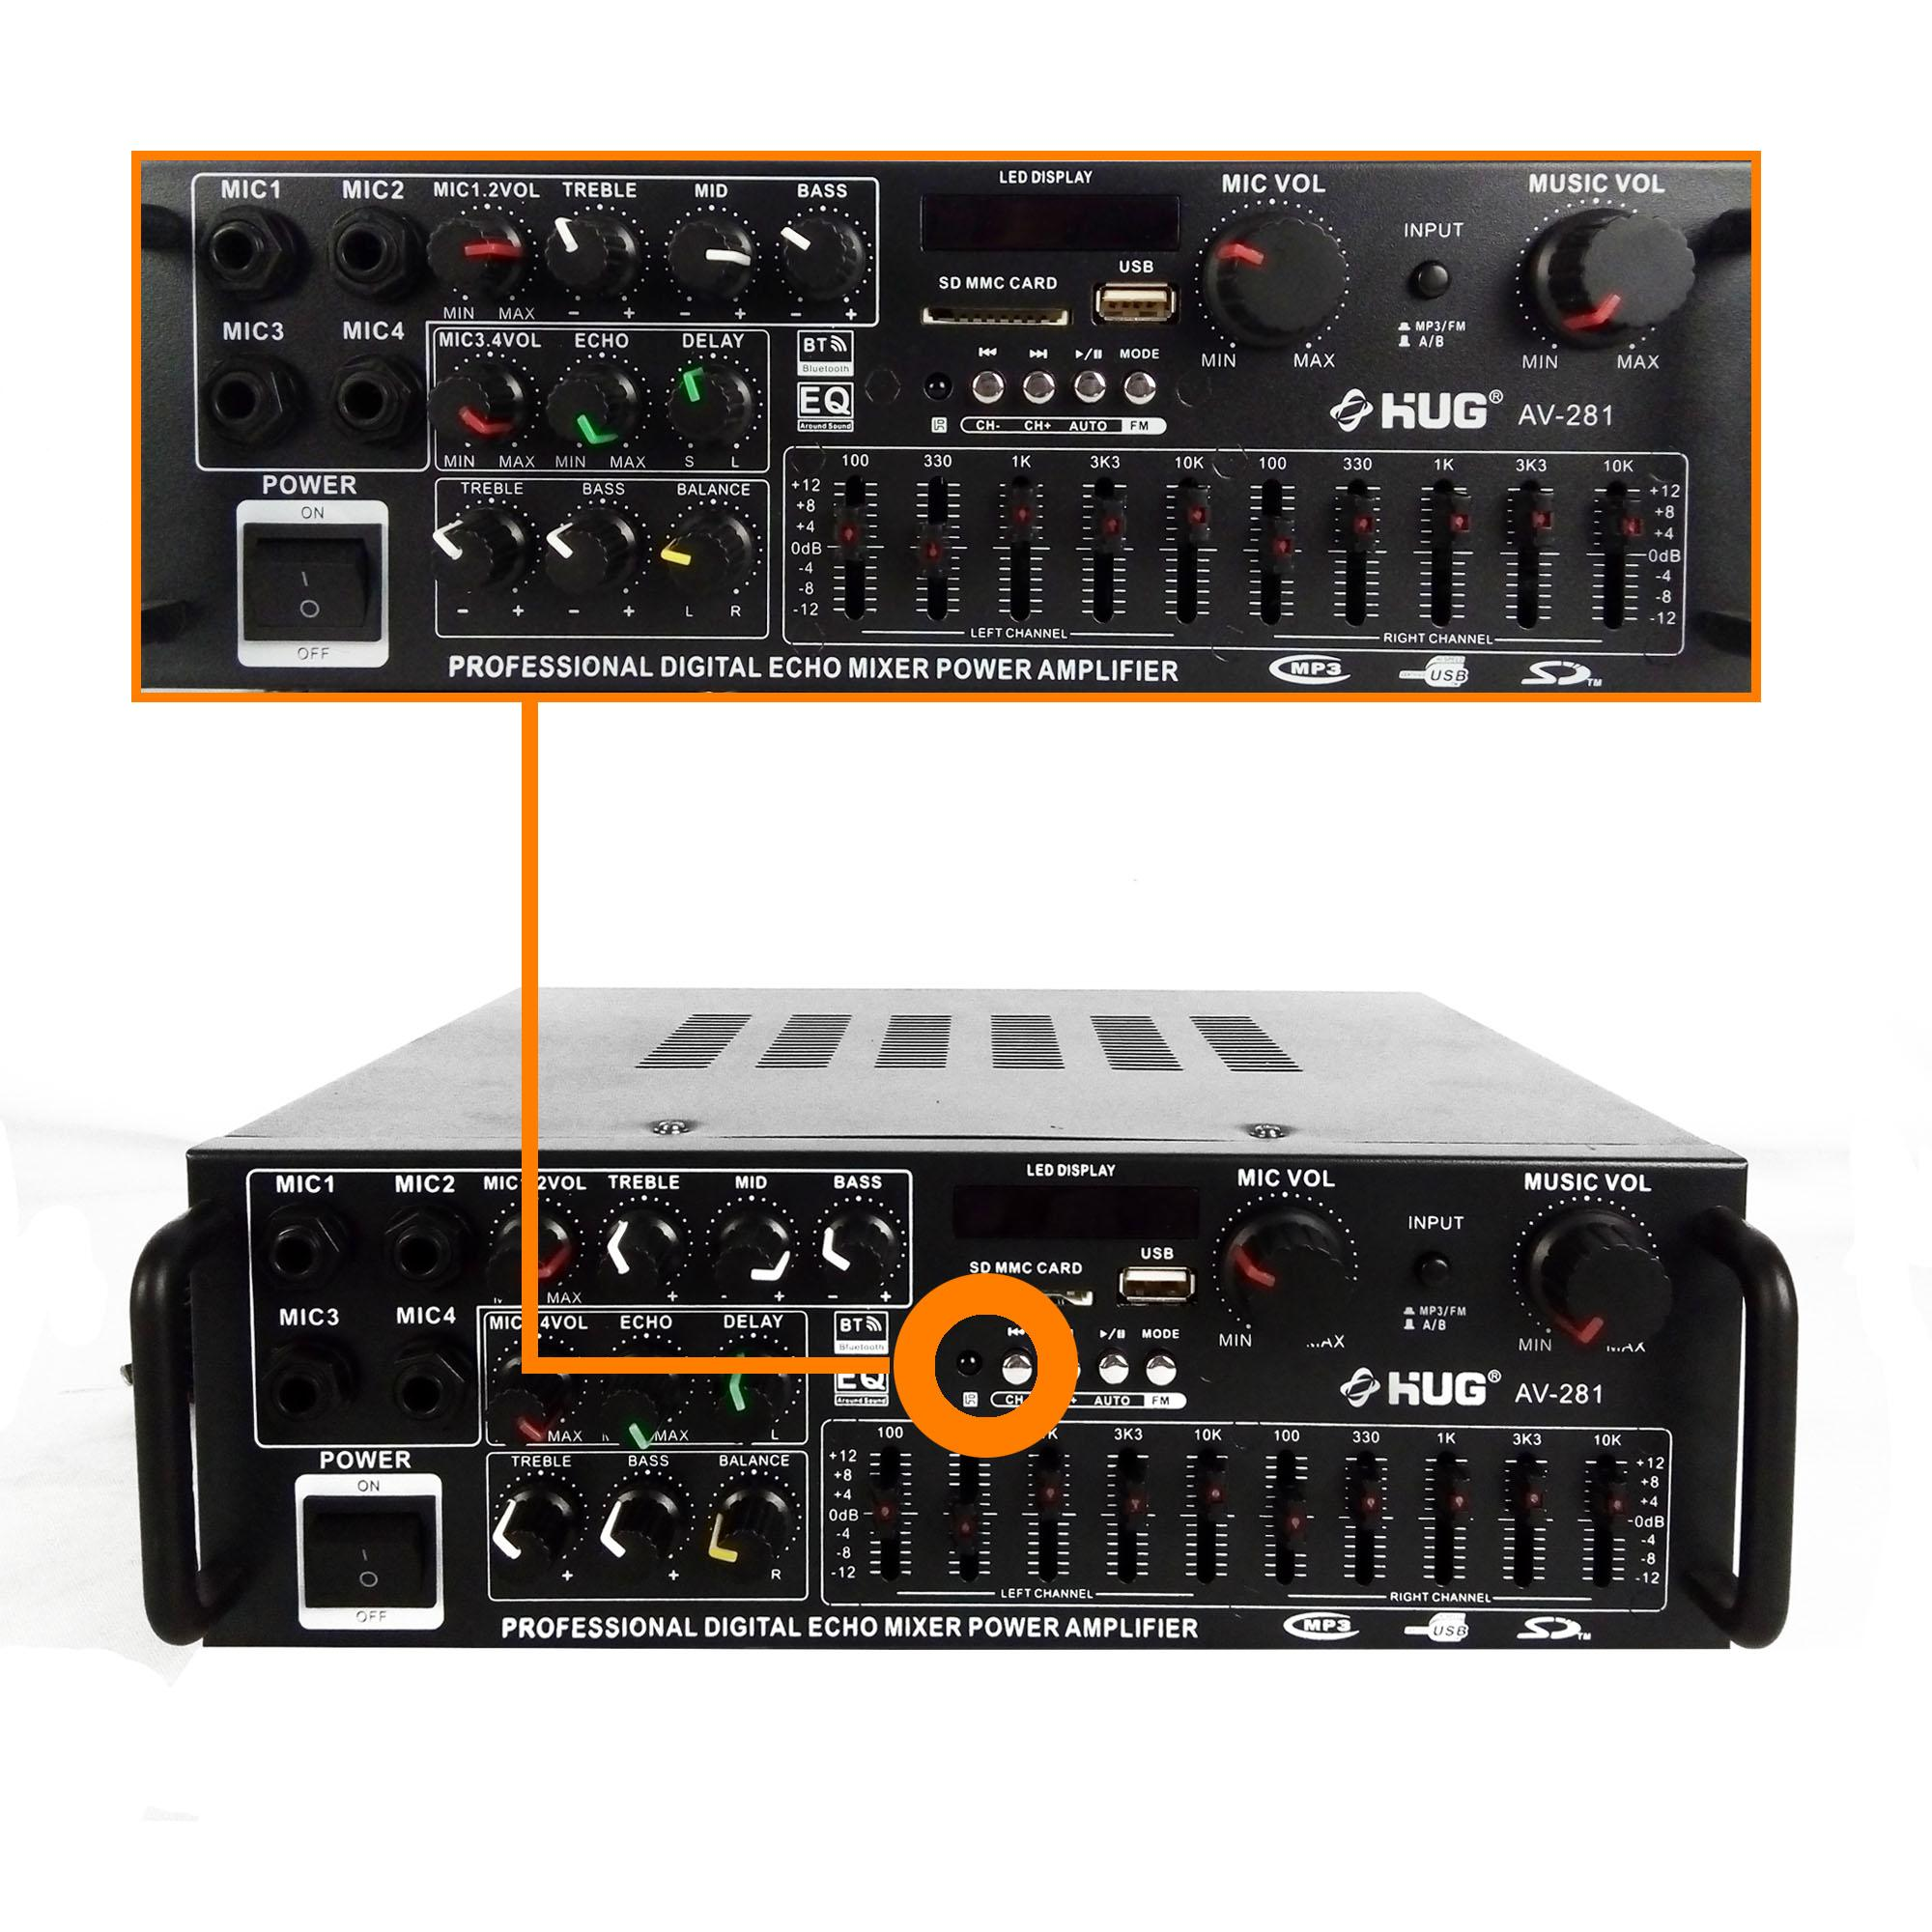 Audio Amplifier For Sale Av Receiver Prices Brands Specs In Dictionary Of Electronic And Engineering Terms Mixer Circuit Hug Professional Digital Echo Power Av281